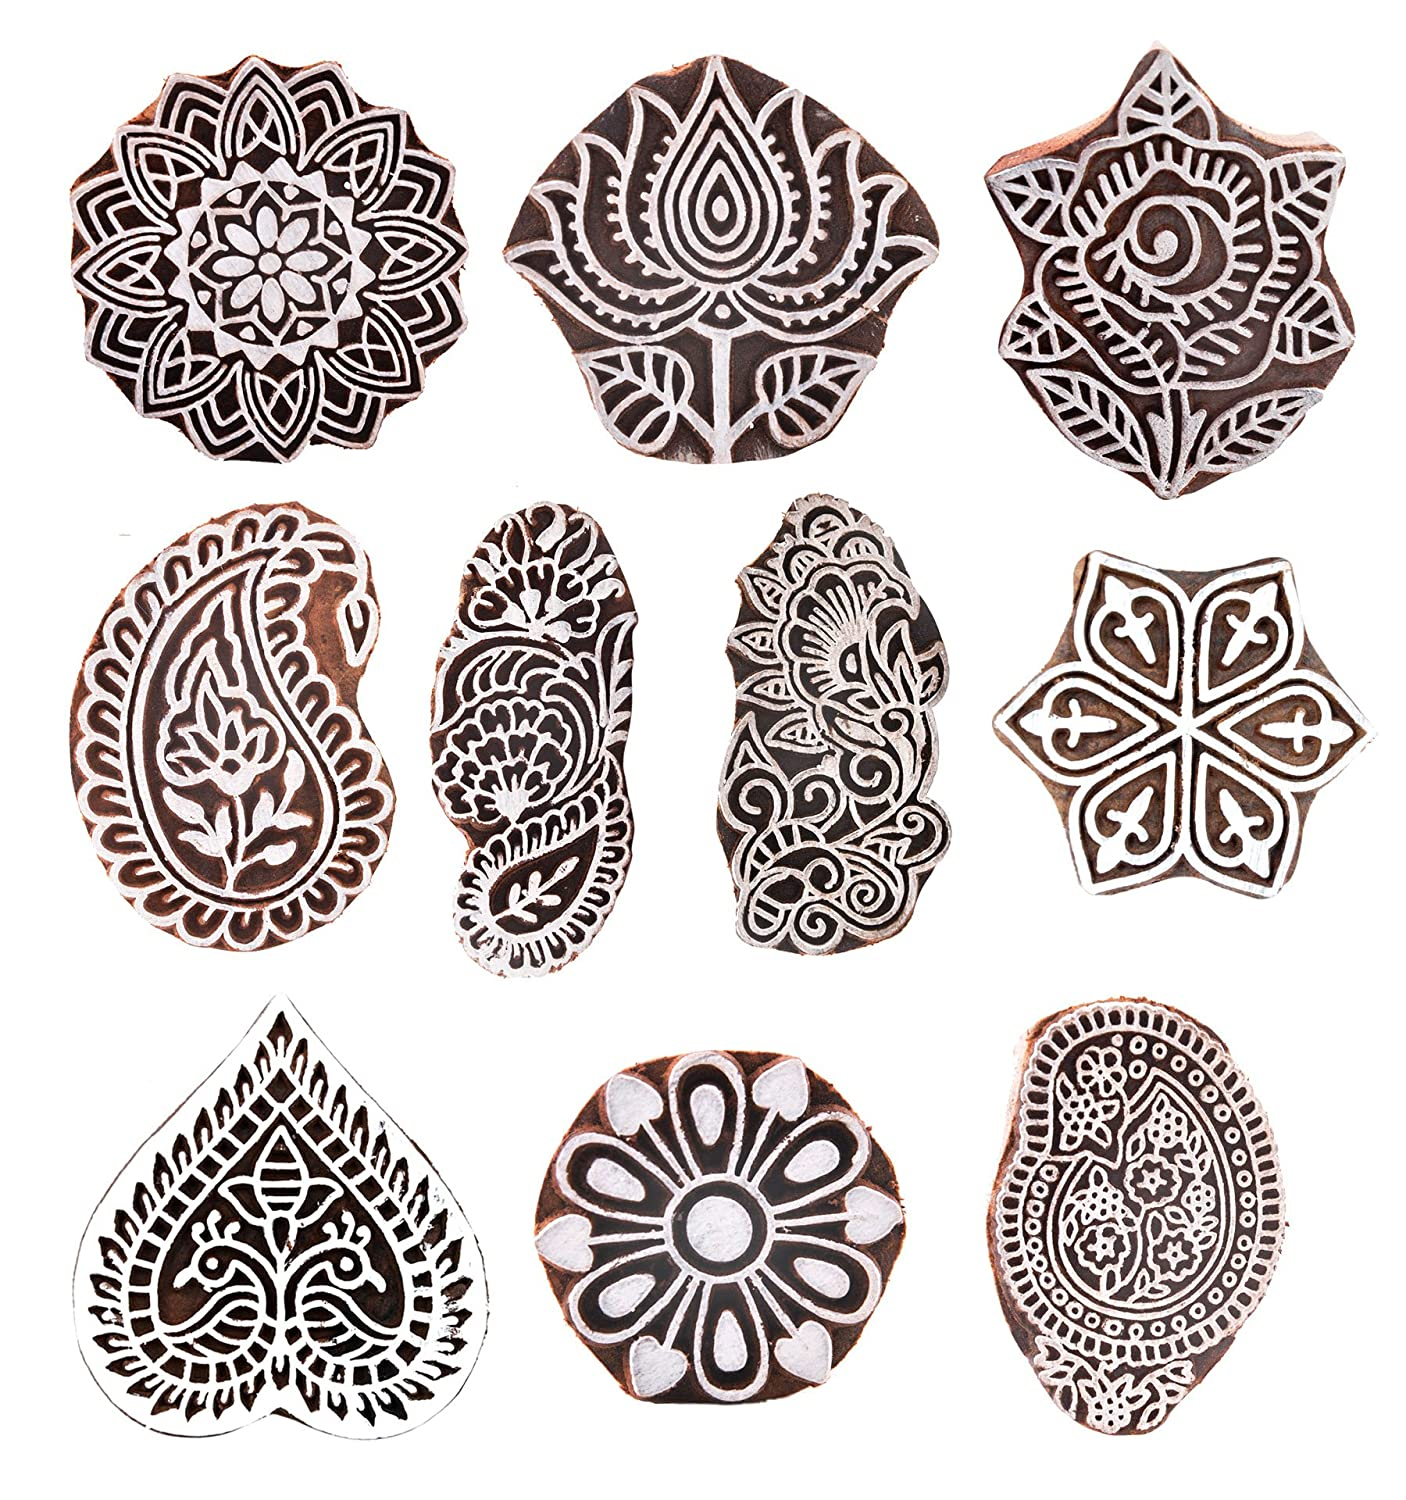 Together with container blocks on t shirt design kit free download - Hashcart Set Of 10 Mughal Design Wooden Printing Stamp Block Hand Carved For